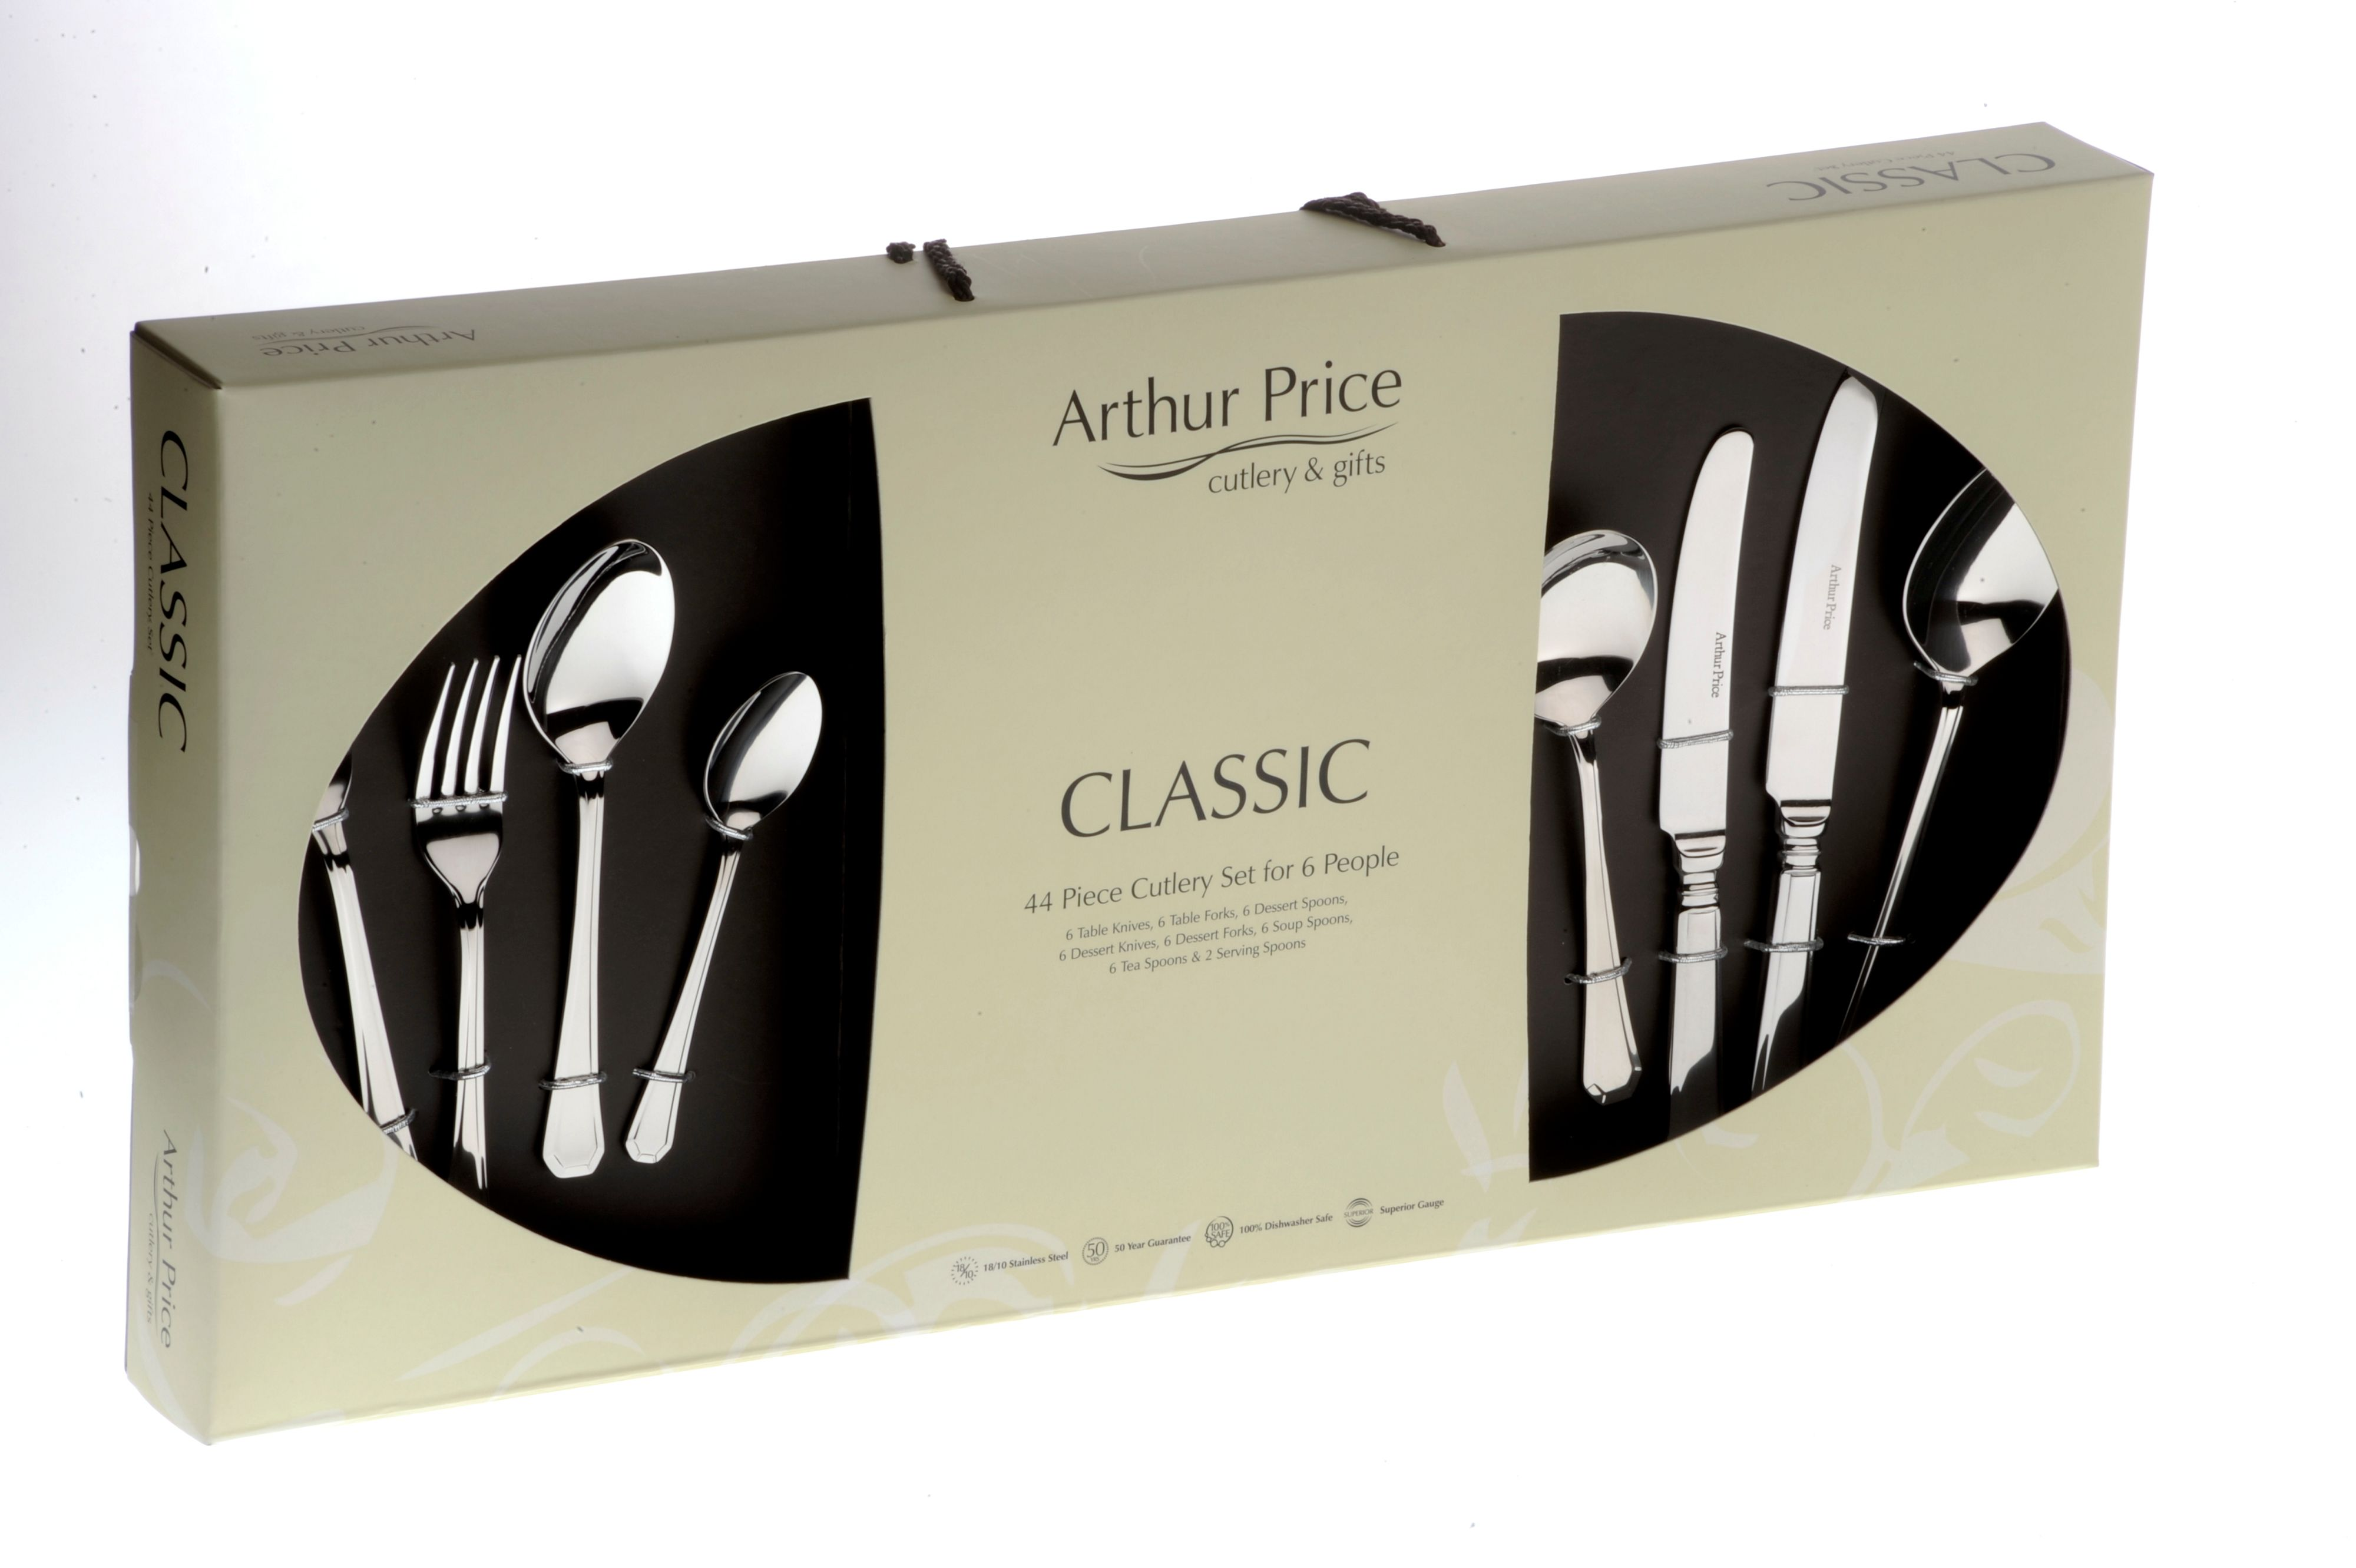 Grecian 44 piece cutlery box